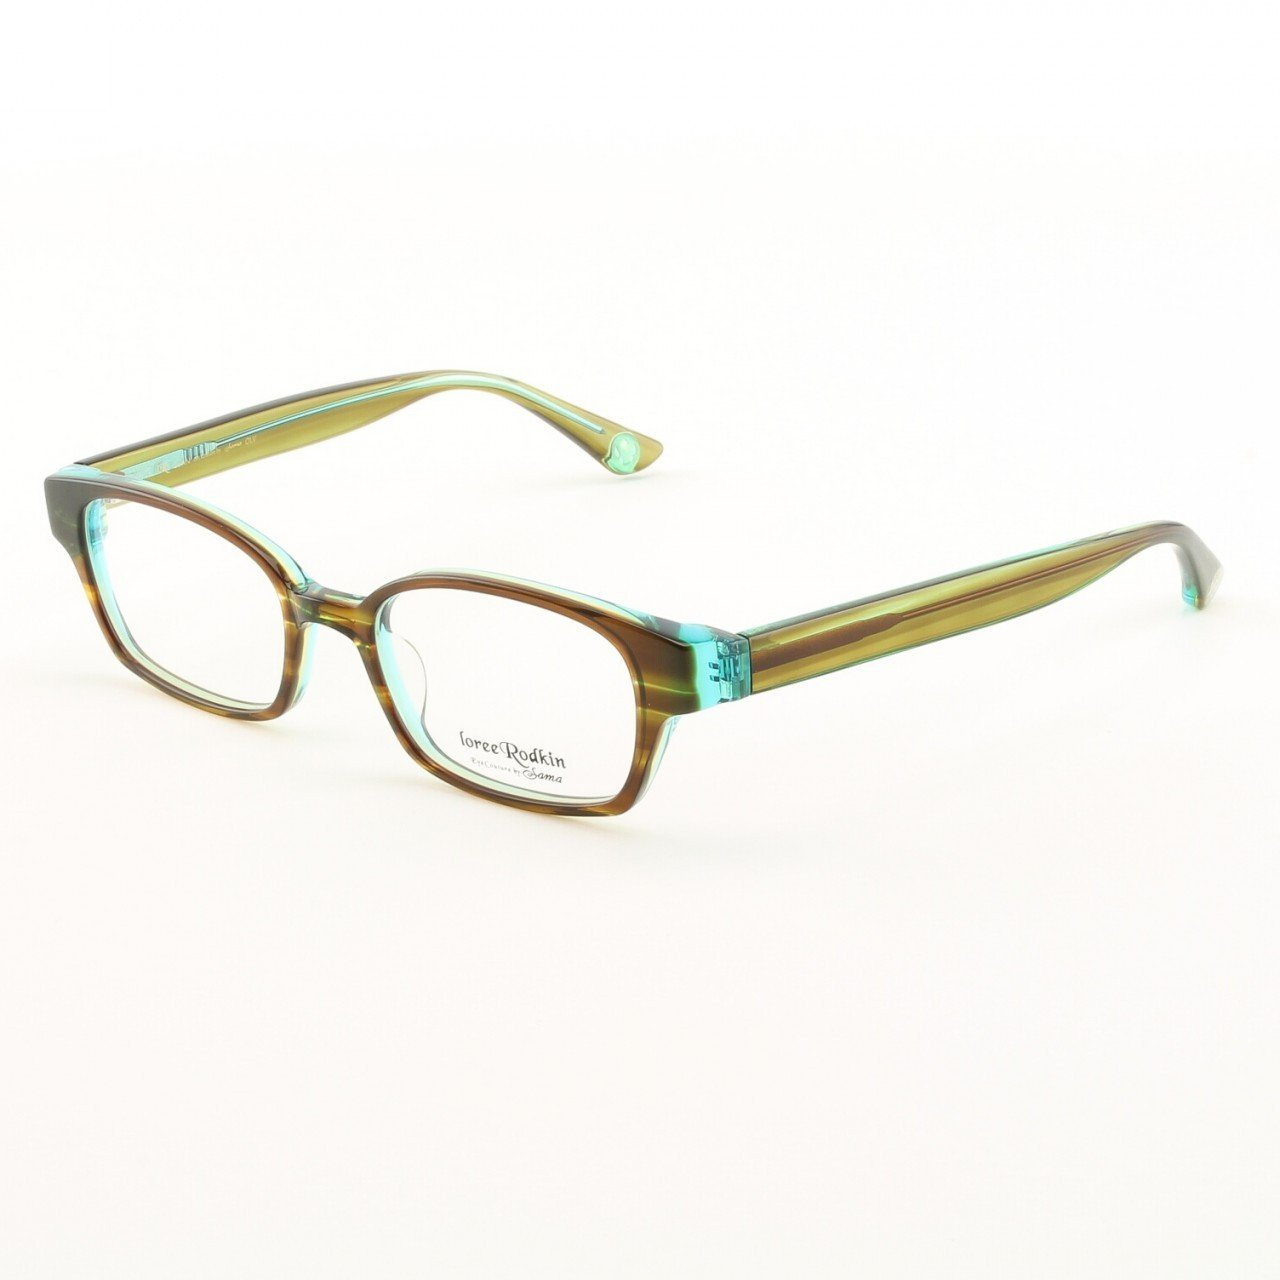 Loree Rodkin Evan Eyeglasses by Sama Col. Olive with Clear Lenses